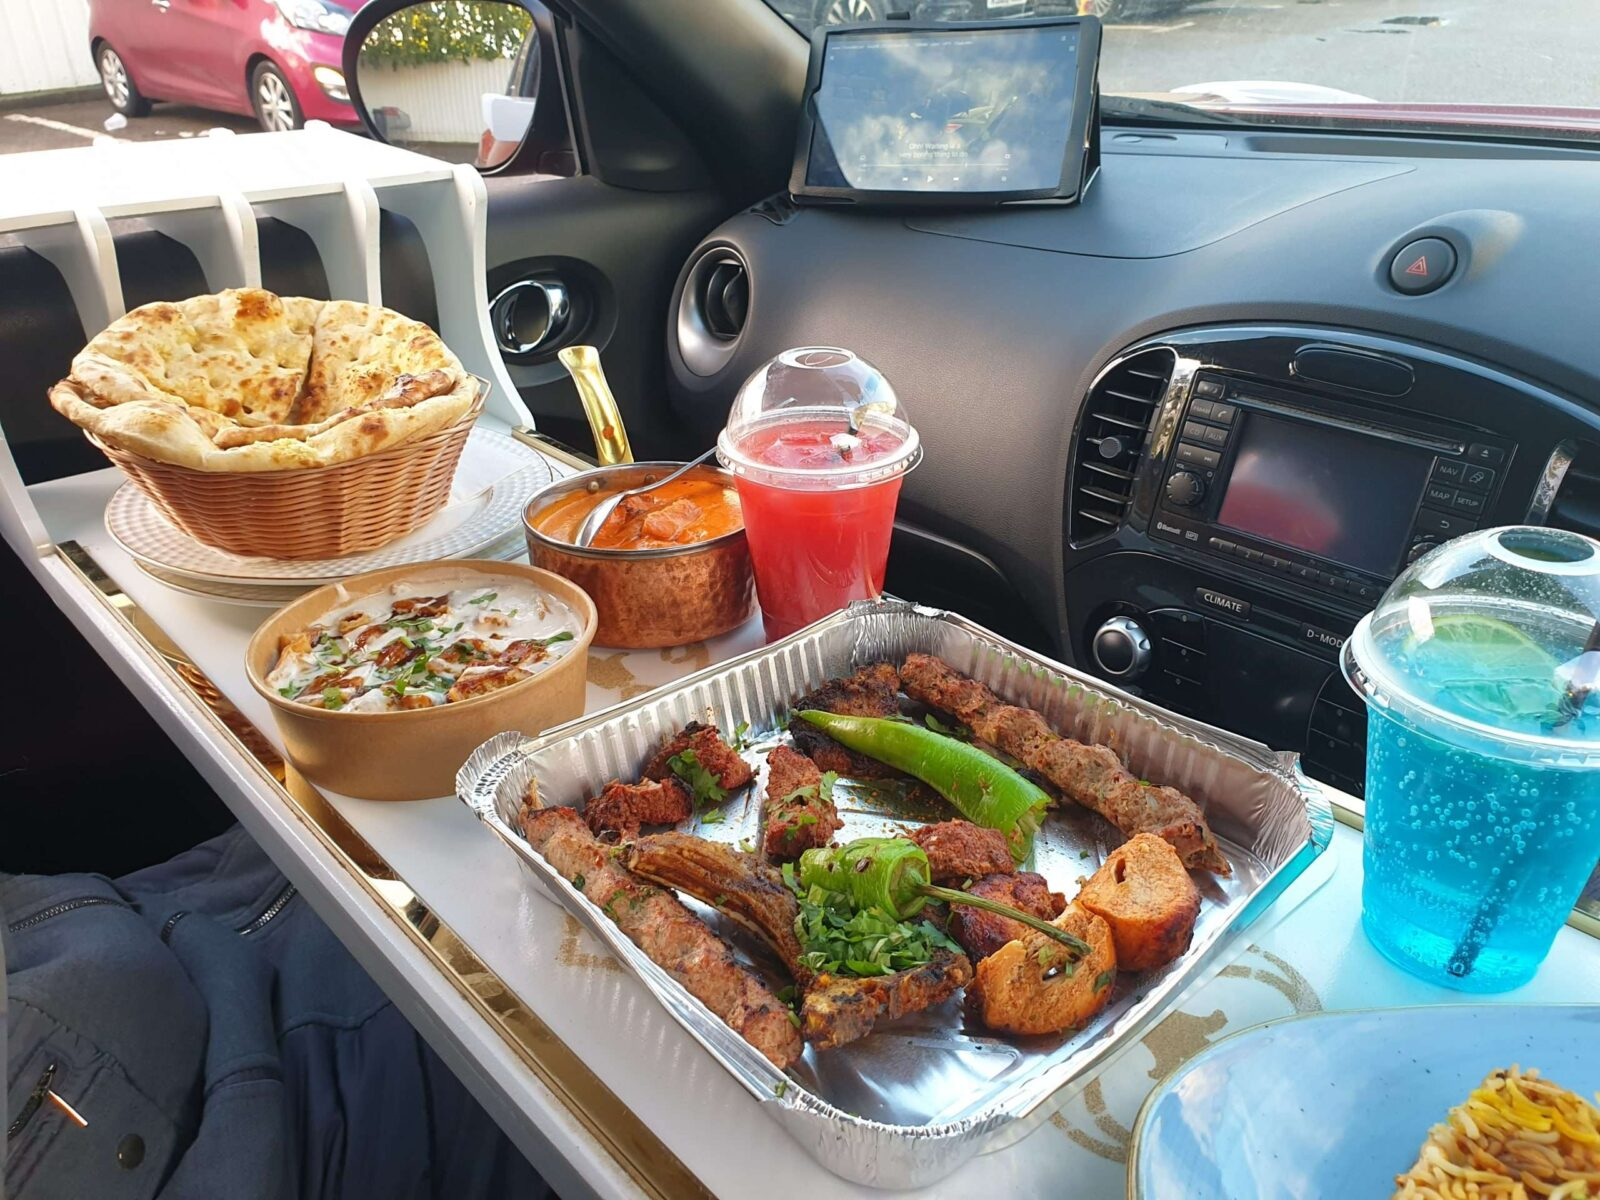 Drive Thru Served in a tray